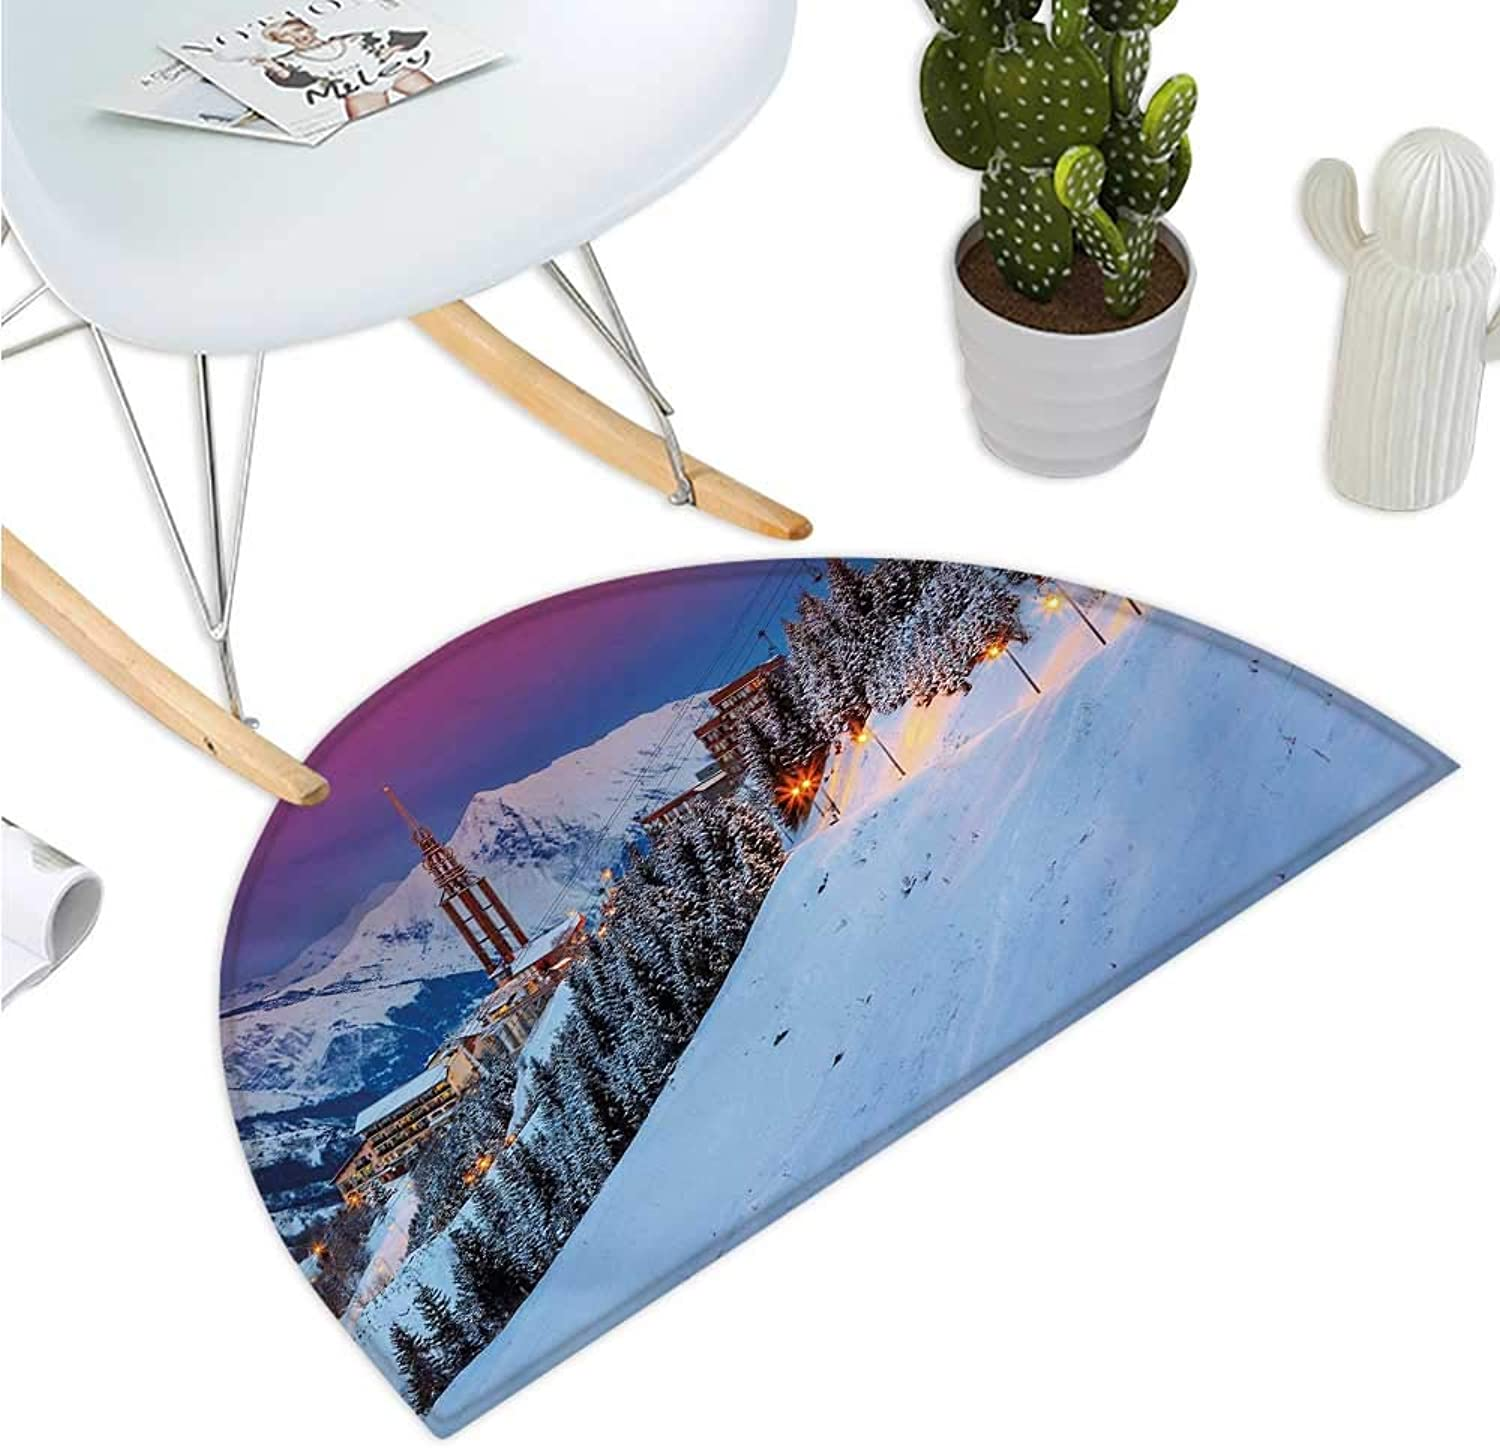 Winter Semicircular Cushion Majestic Winter Sunrise Landscape and Ski Resort Spruce Pine Forest French Alps Entry Door Mat H 35.4  xD 53.1  Multicolor